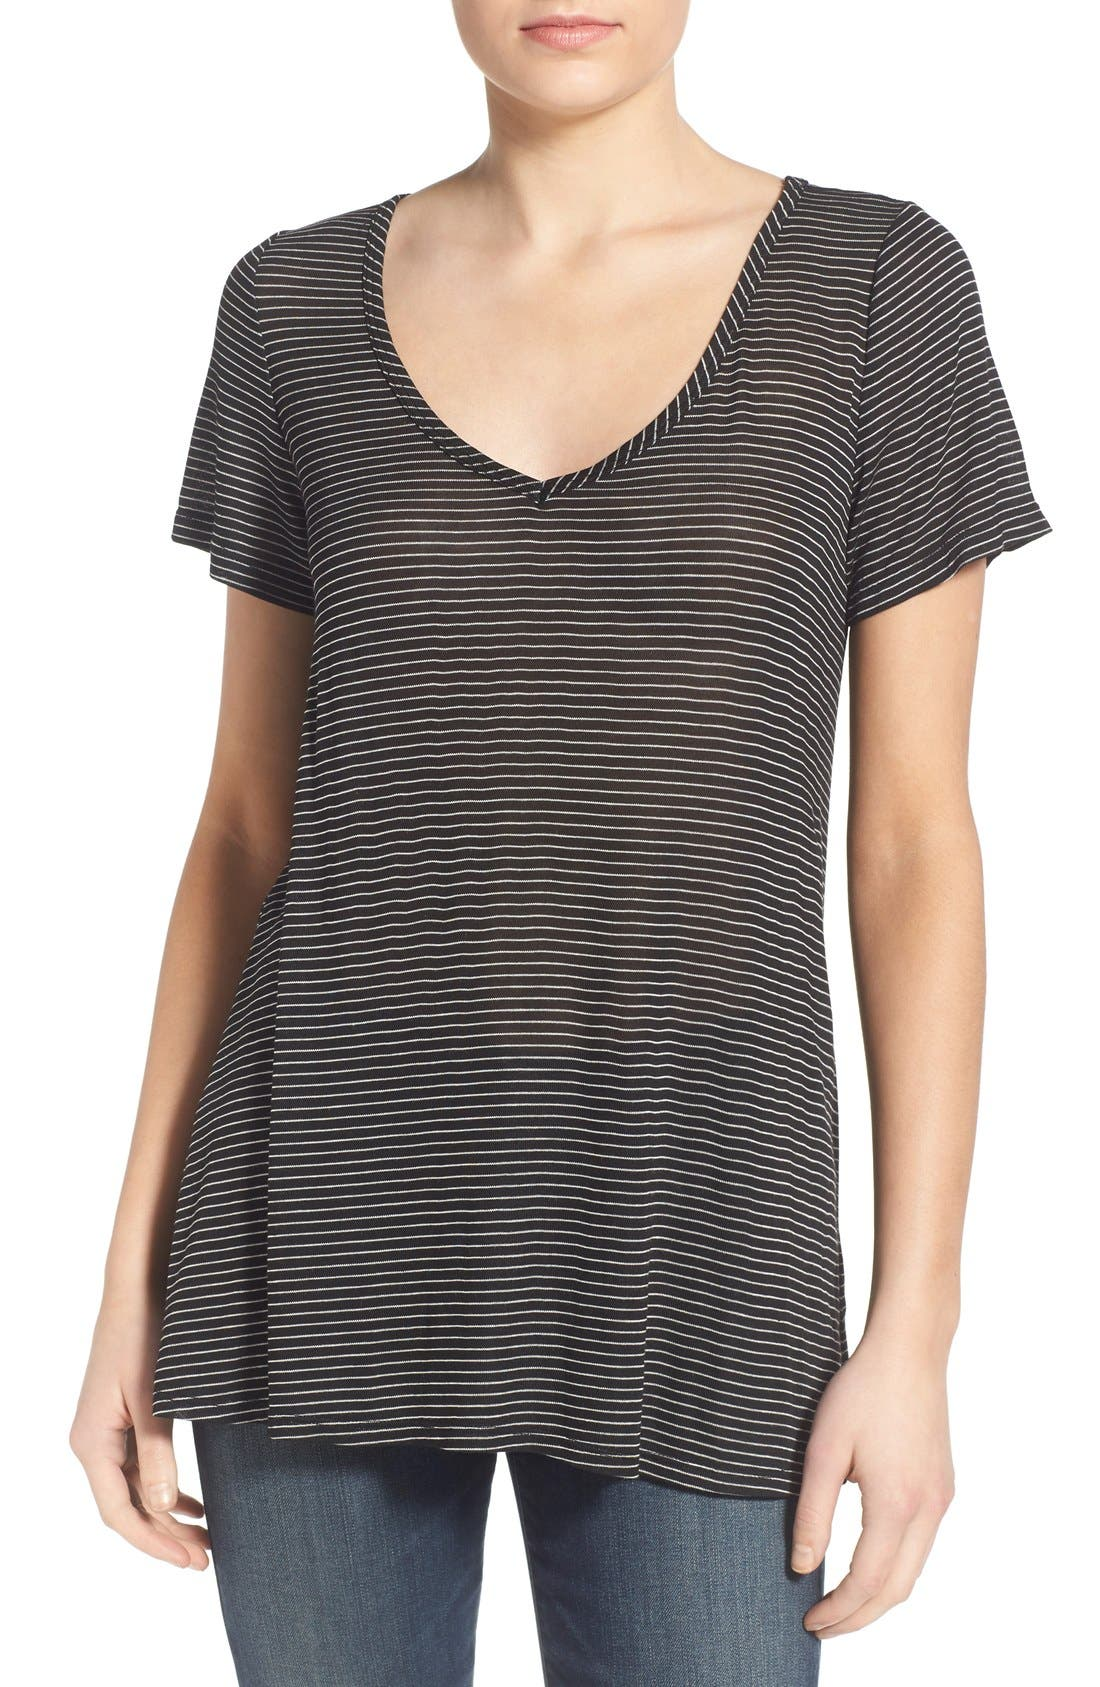 SOCIALITE Stripe Back Cutout Tee, Main, color, 003